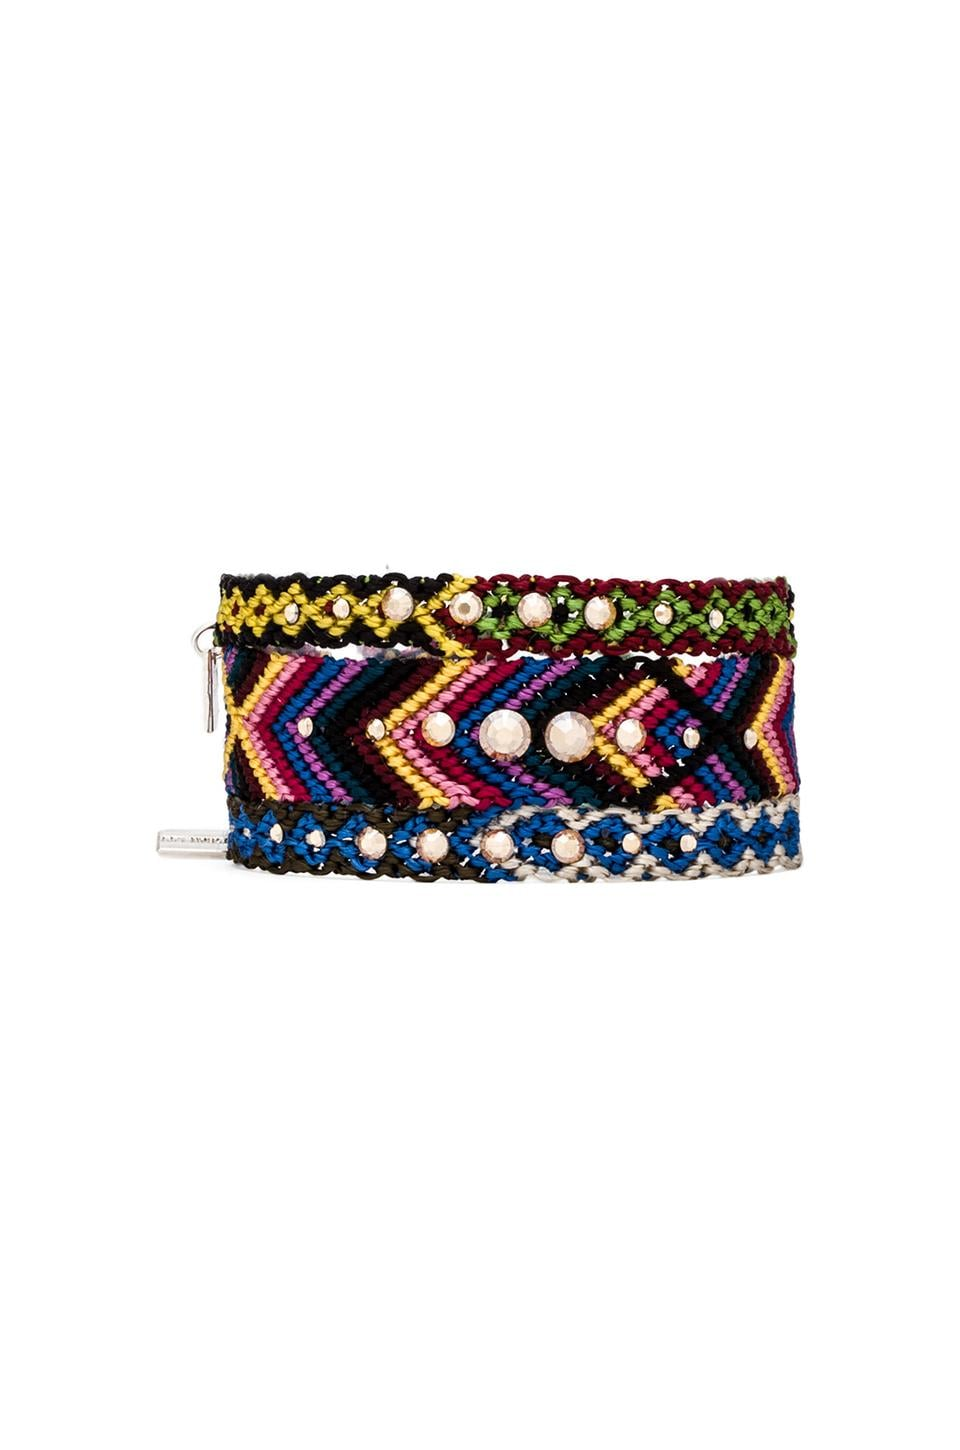 CHAN LUU Friendship Bracelet Set in Golden Shadow